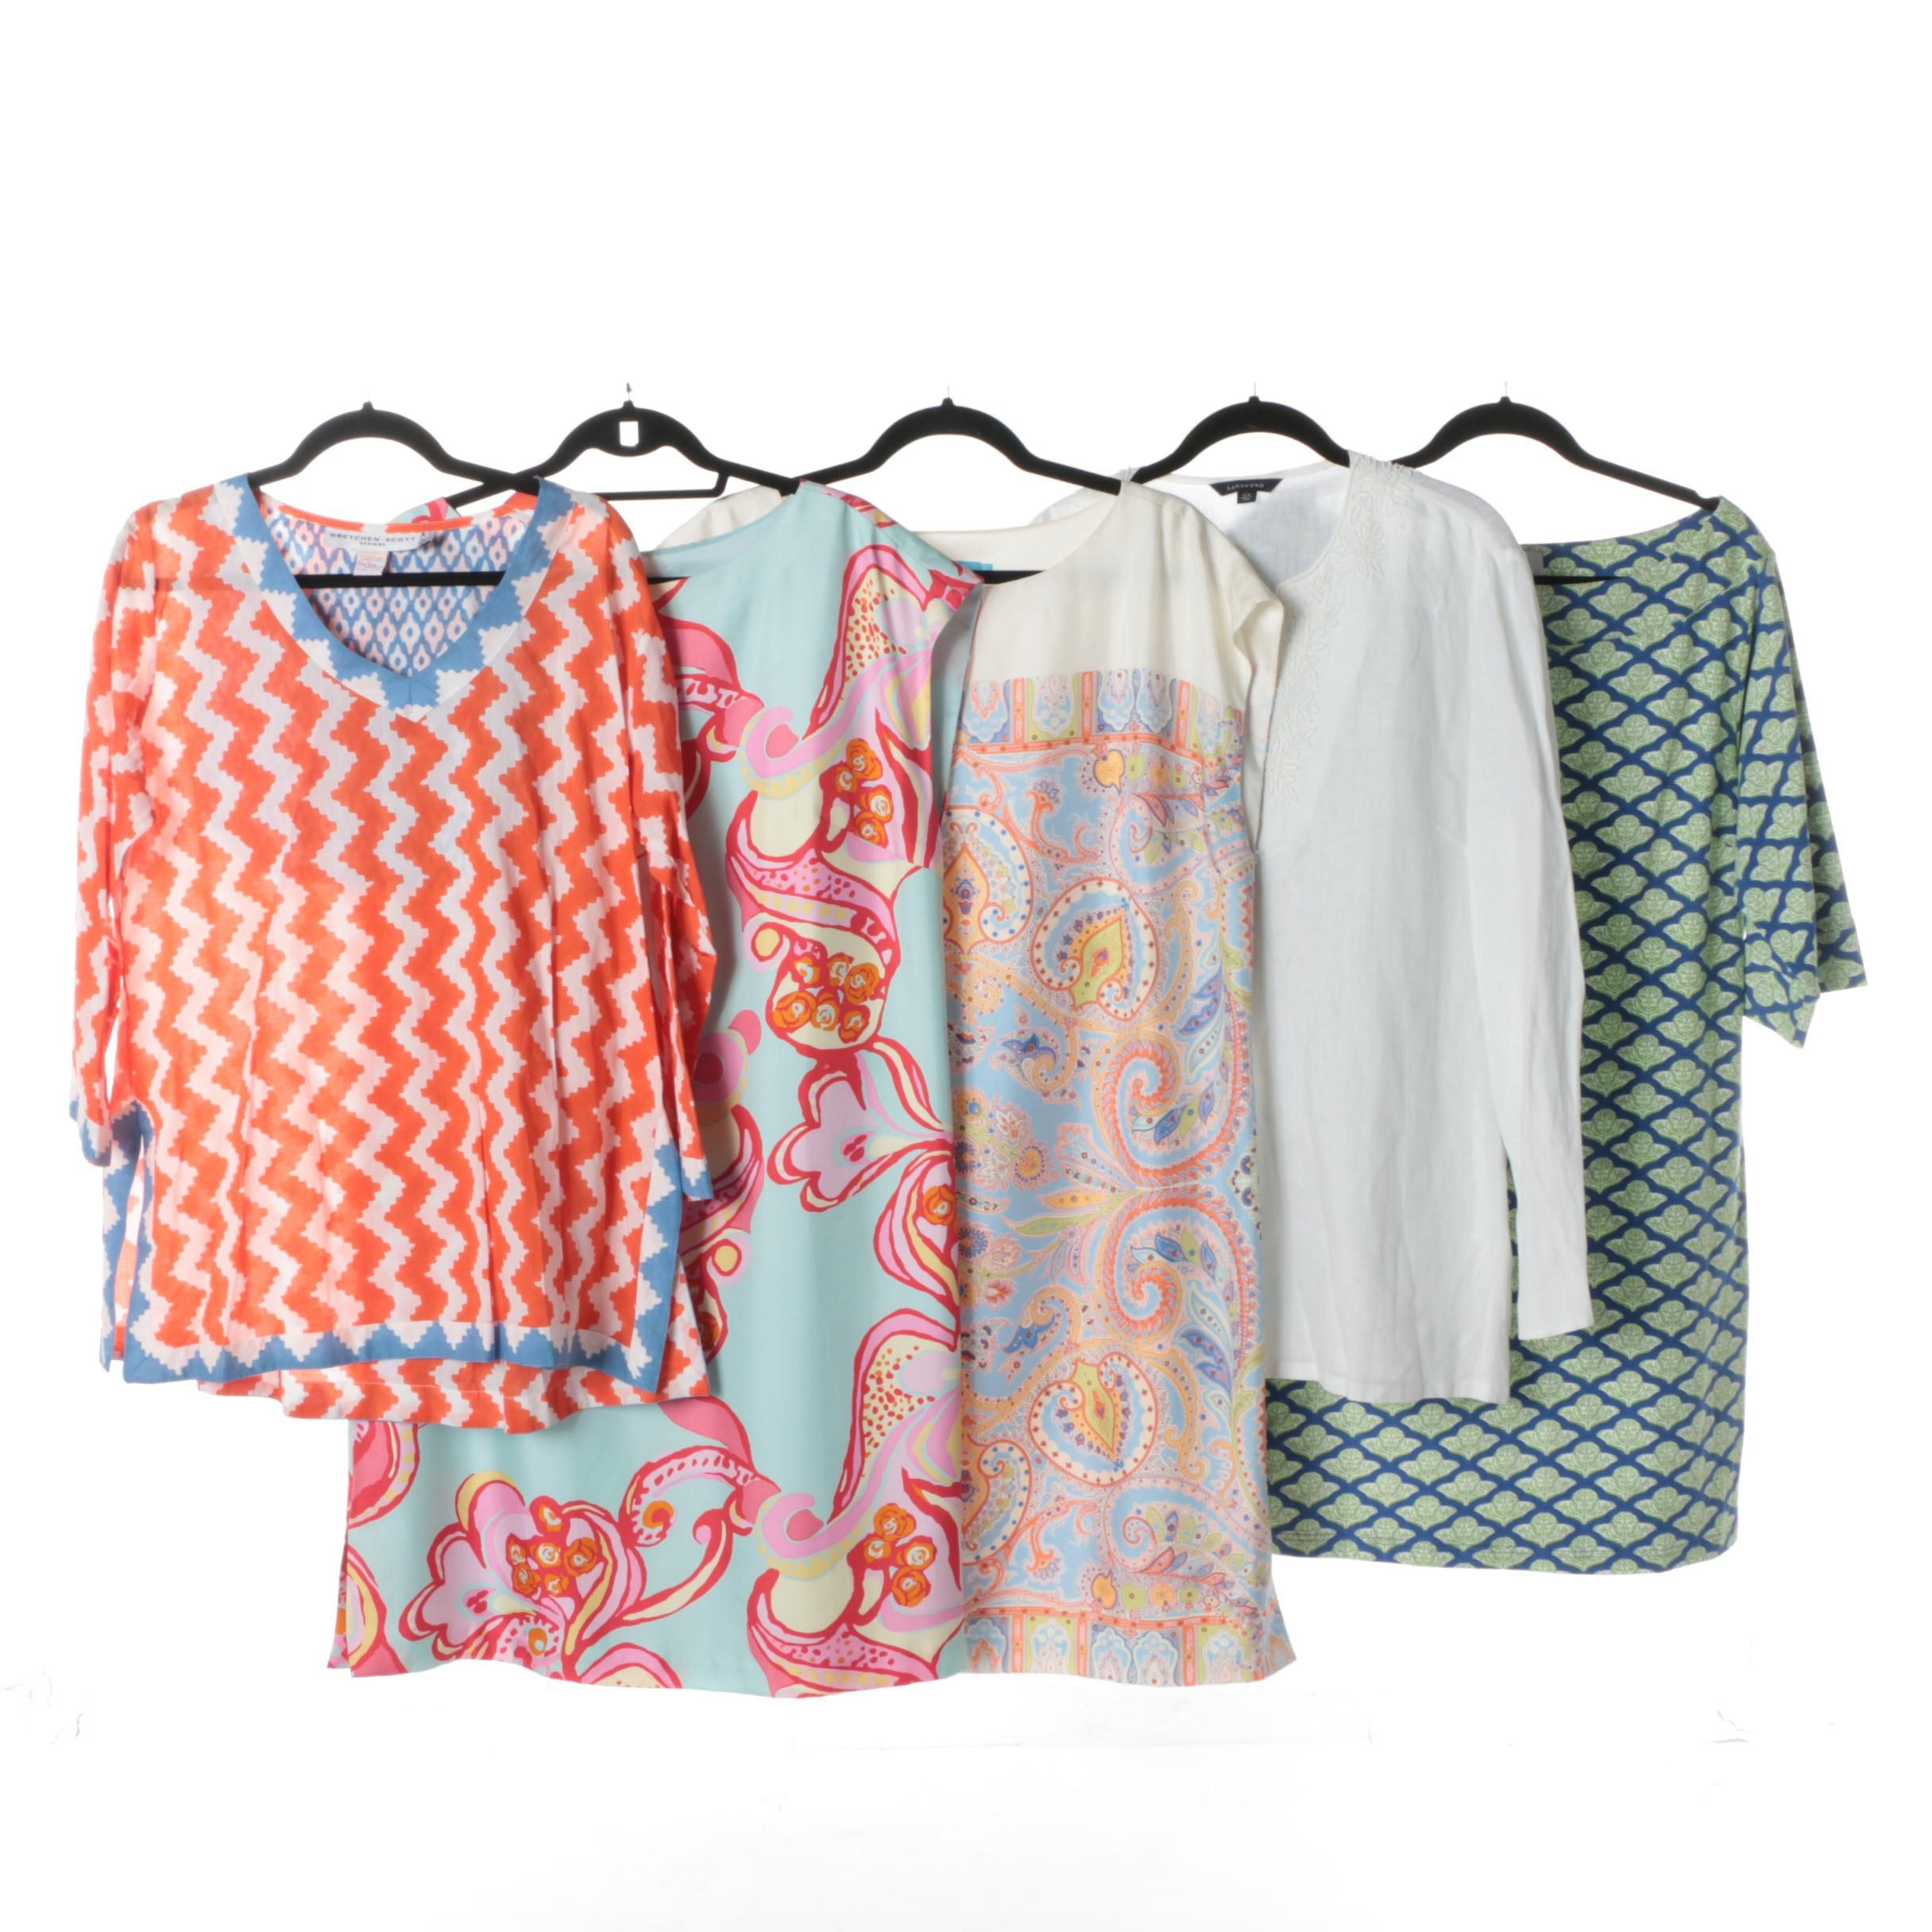 Women's Tunics and Dresses Including J. McLaughlin and Lands' End